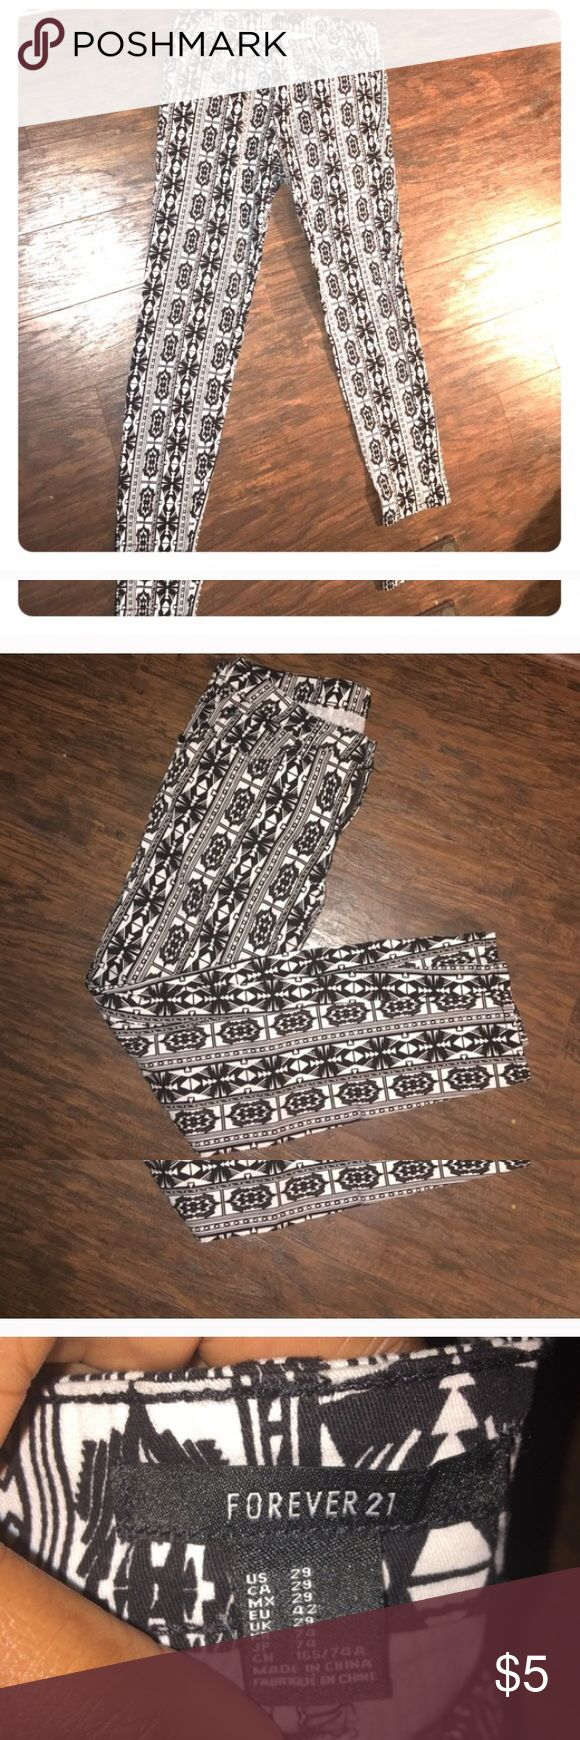 Black n White Aztec Pants Black n White Aztec skinny pants. In brand new condition. Front and back pockets. Size 29. No model sorry. Forever 21 Pants Skinny